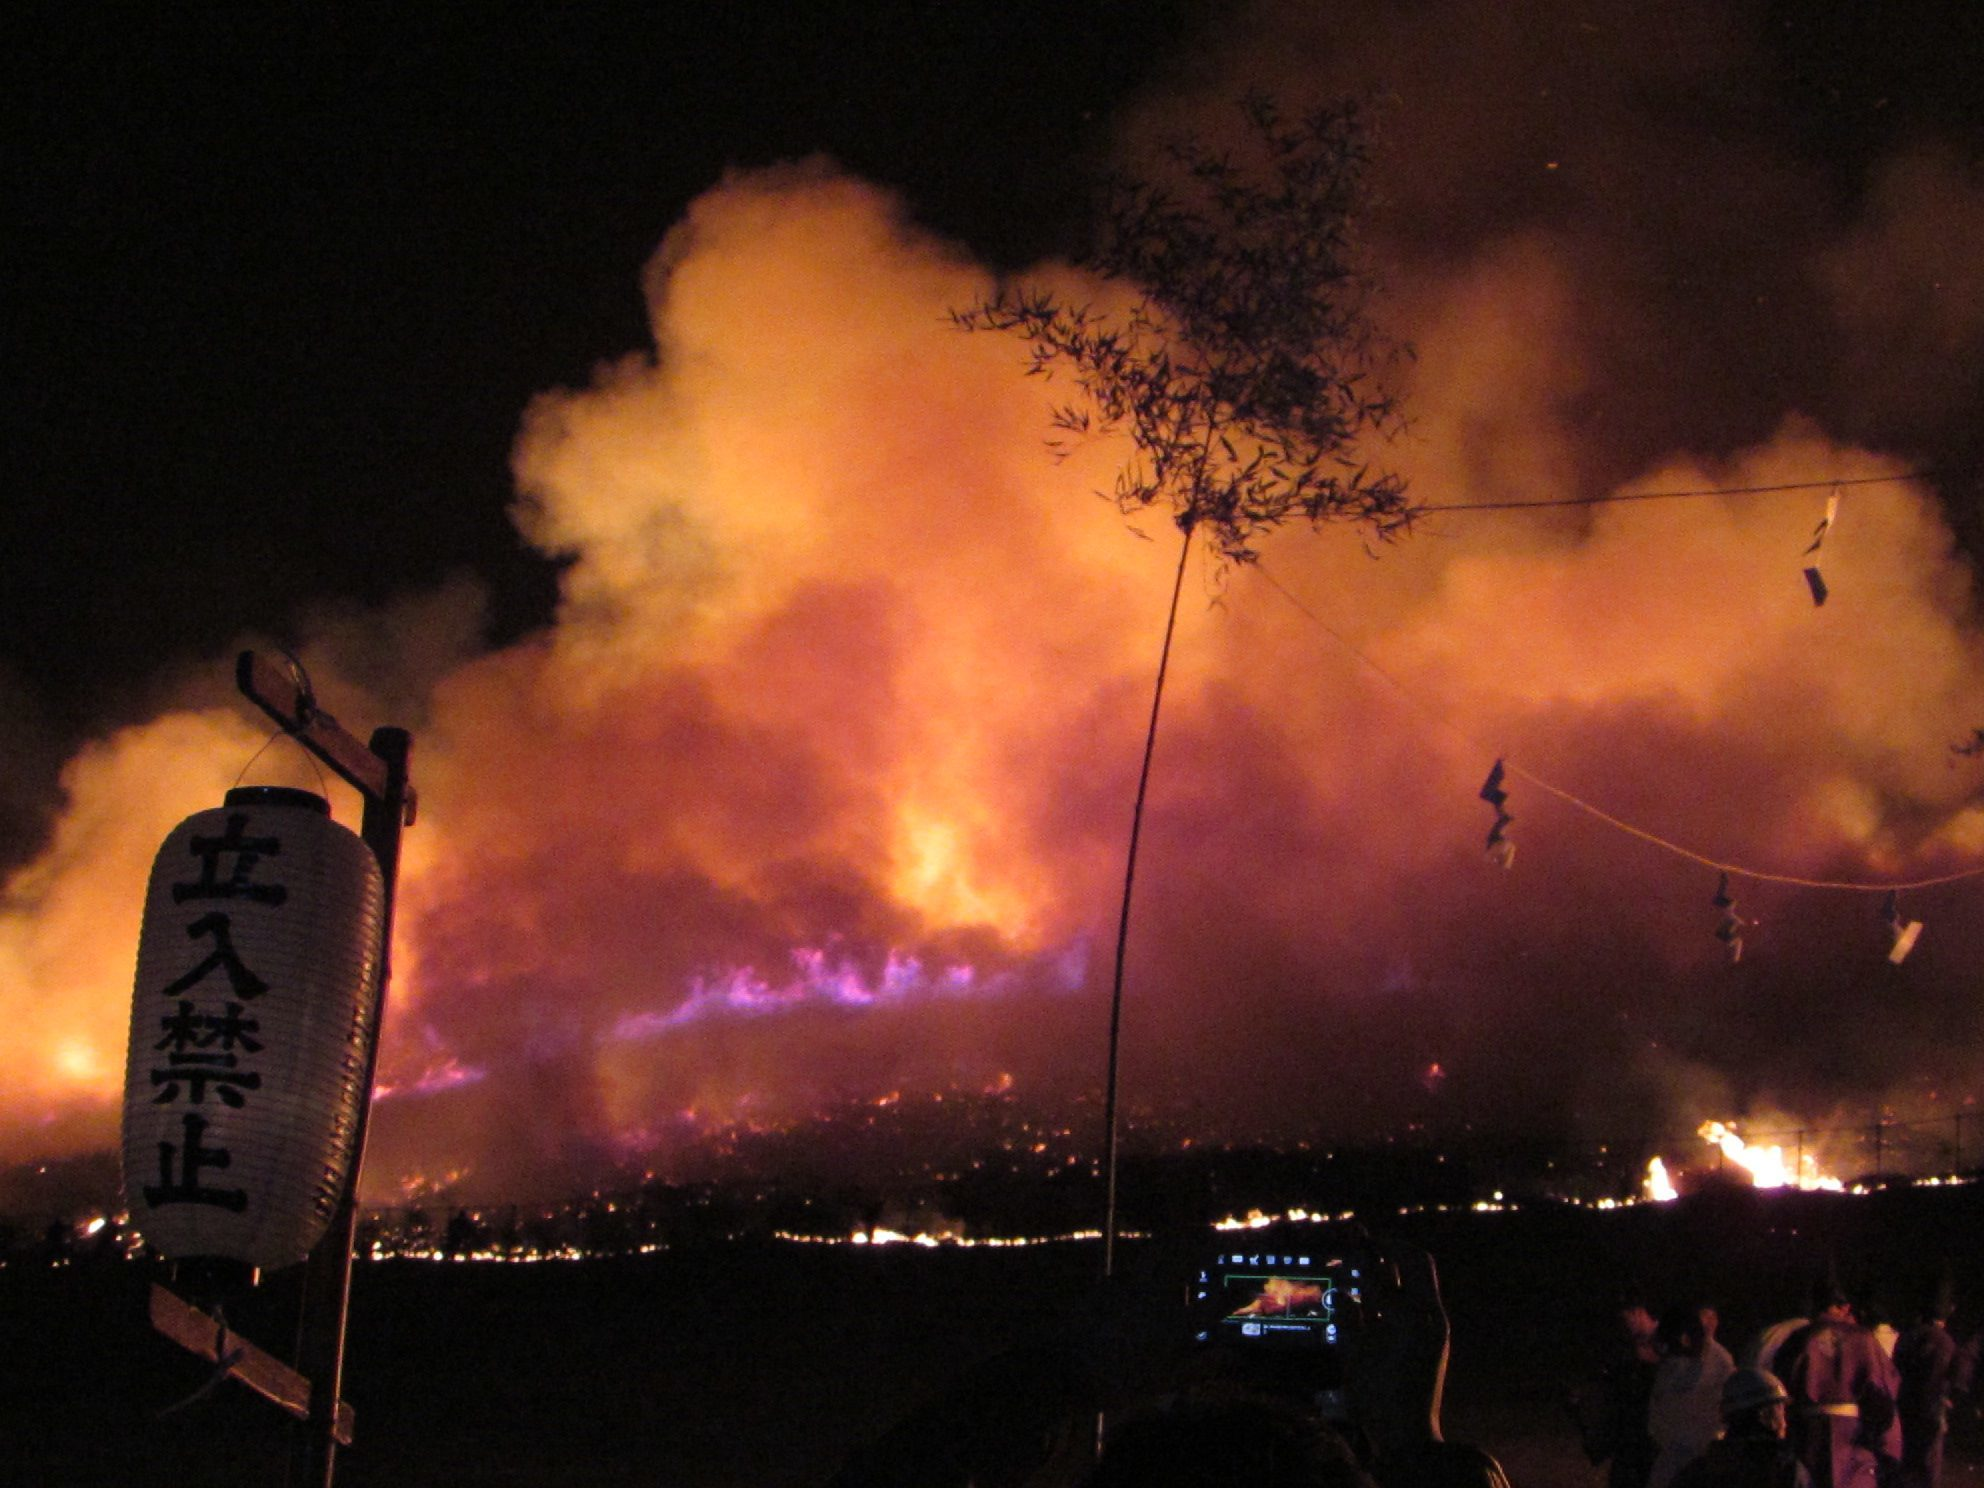 ... but thanks to the dry conditions, the fire quickly spread to envelop the whole mountainside!